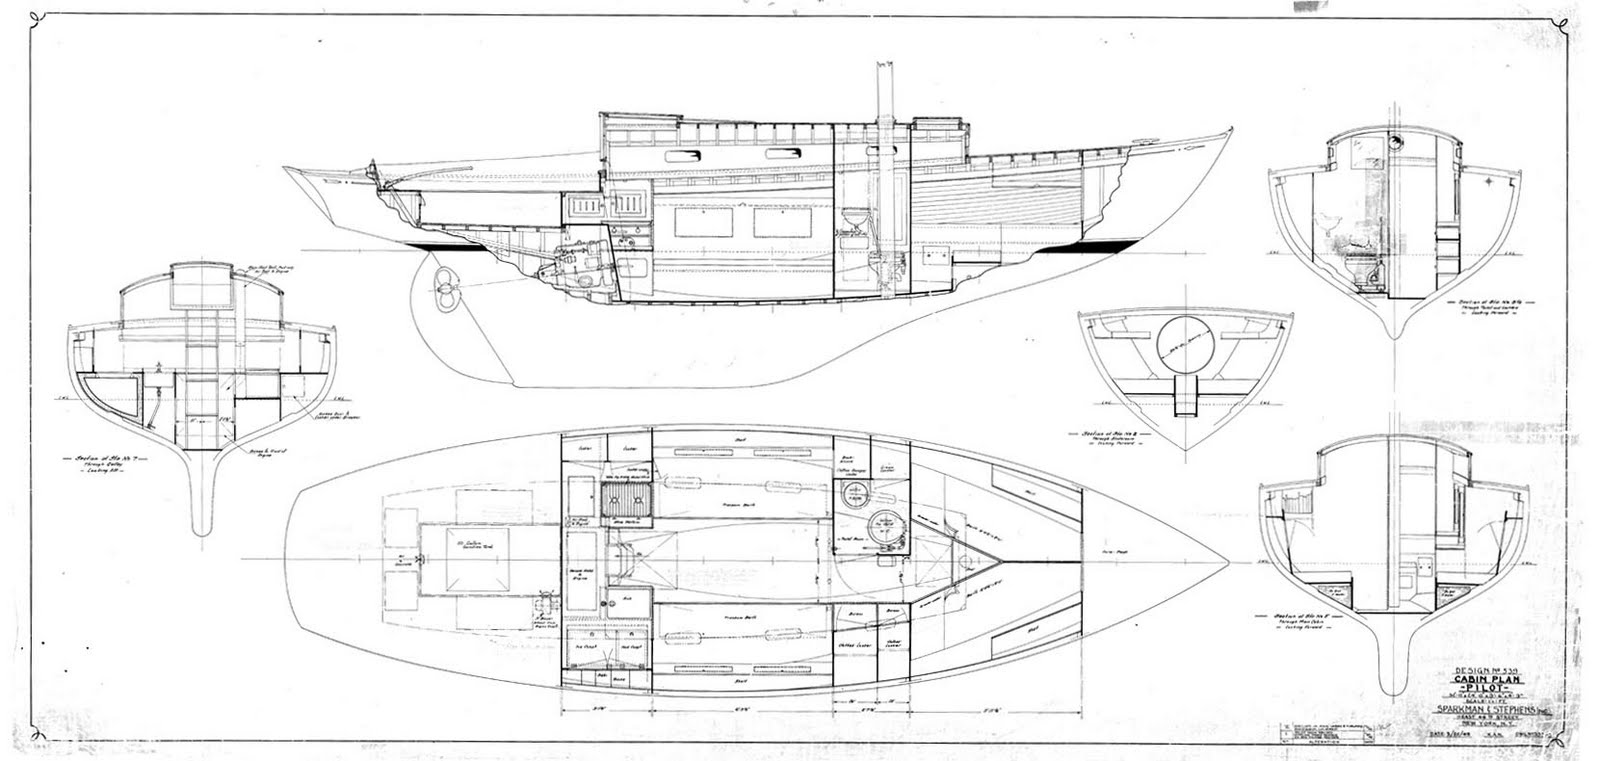 Sparkman stephens pilot class design 539 for 539 plan